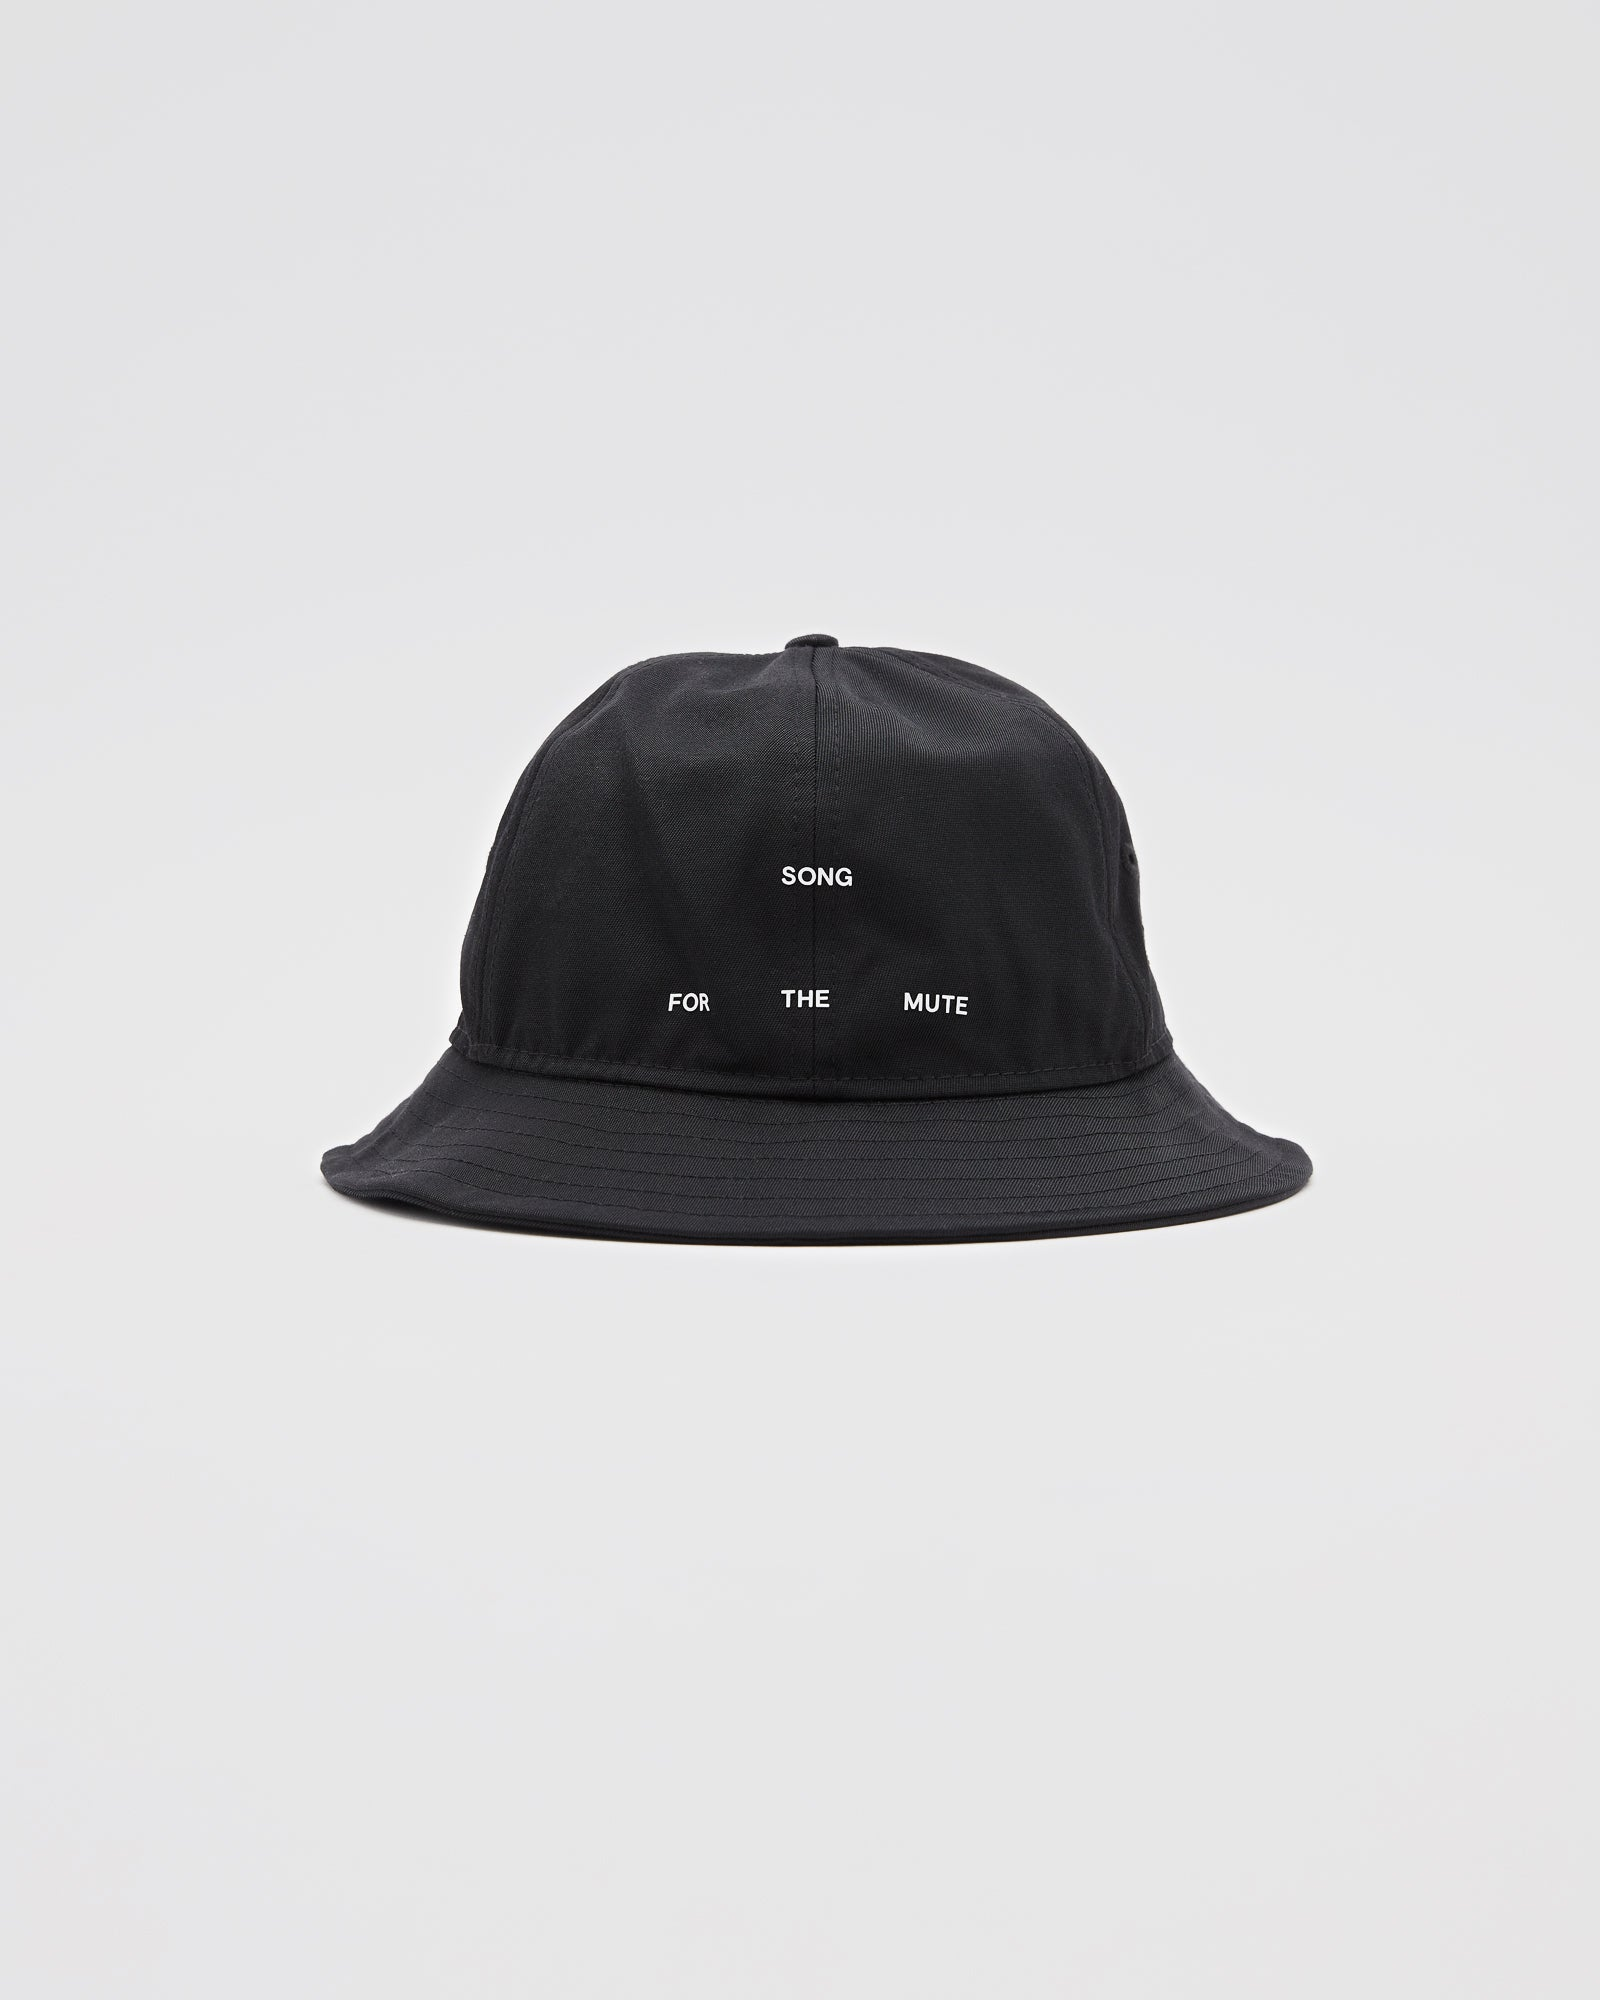 SFTM X New Era Explorer Hat in Black